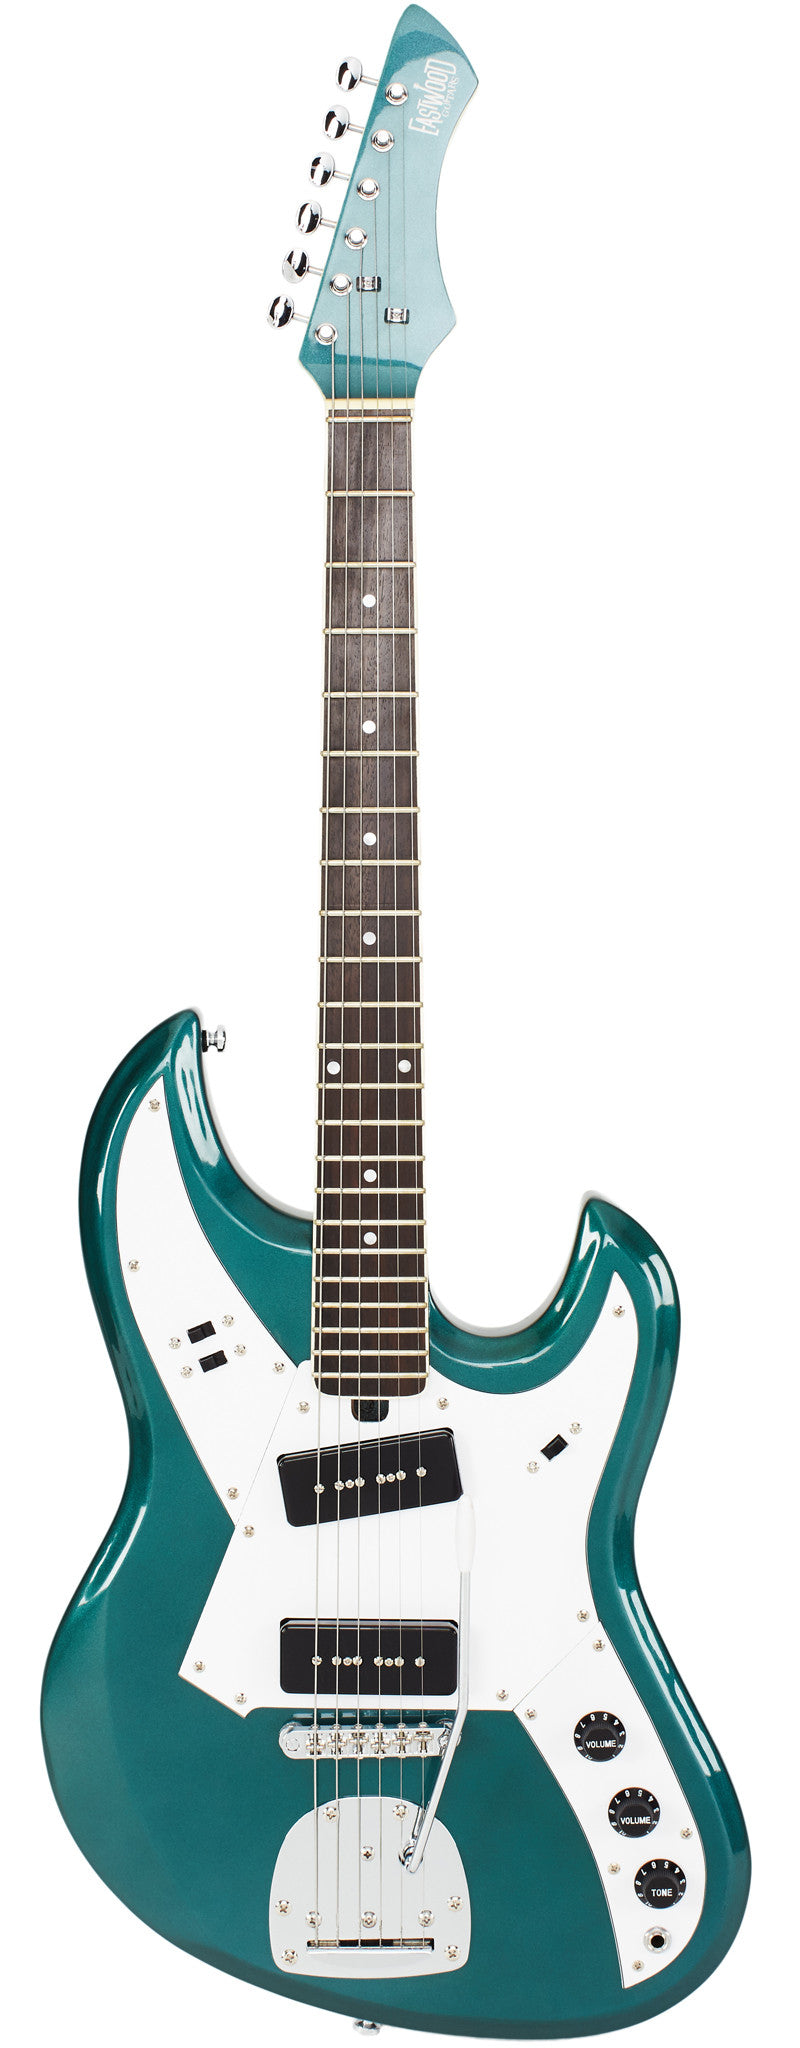 Eastwood Guitars Liberty MS150 Metallic Teal Full Front